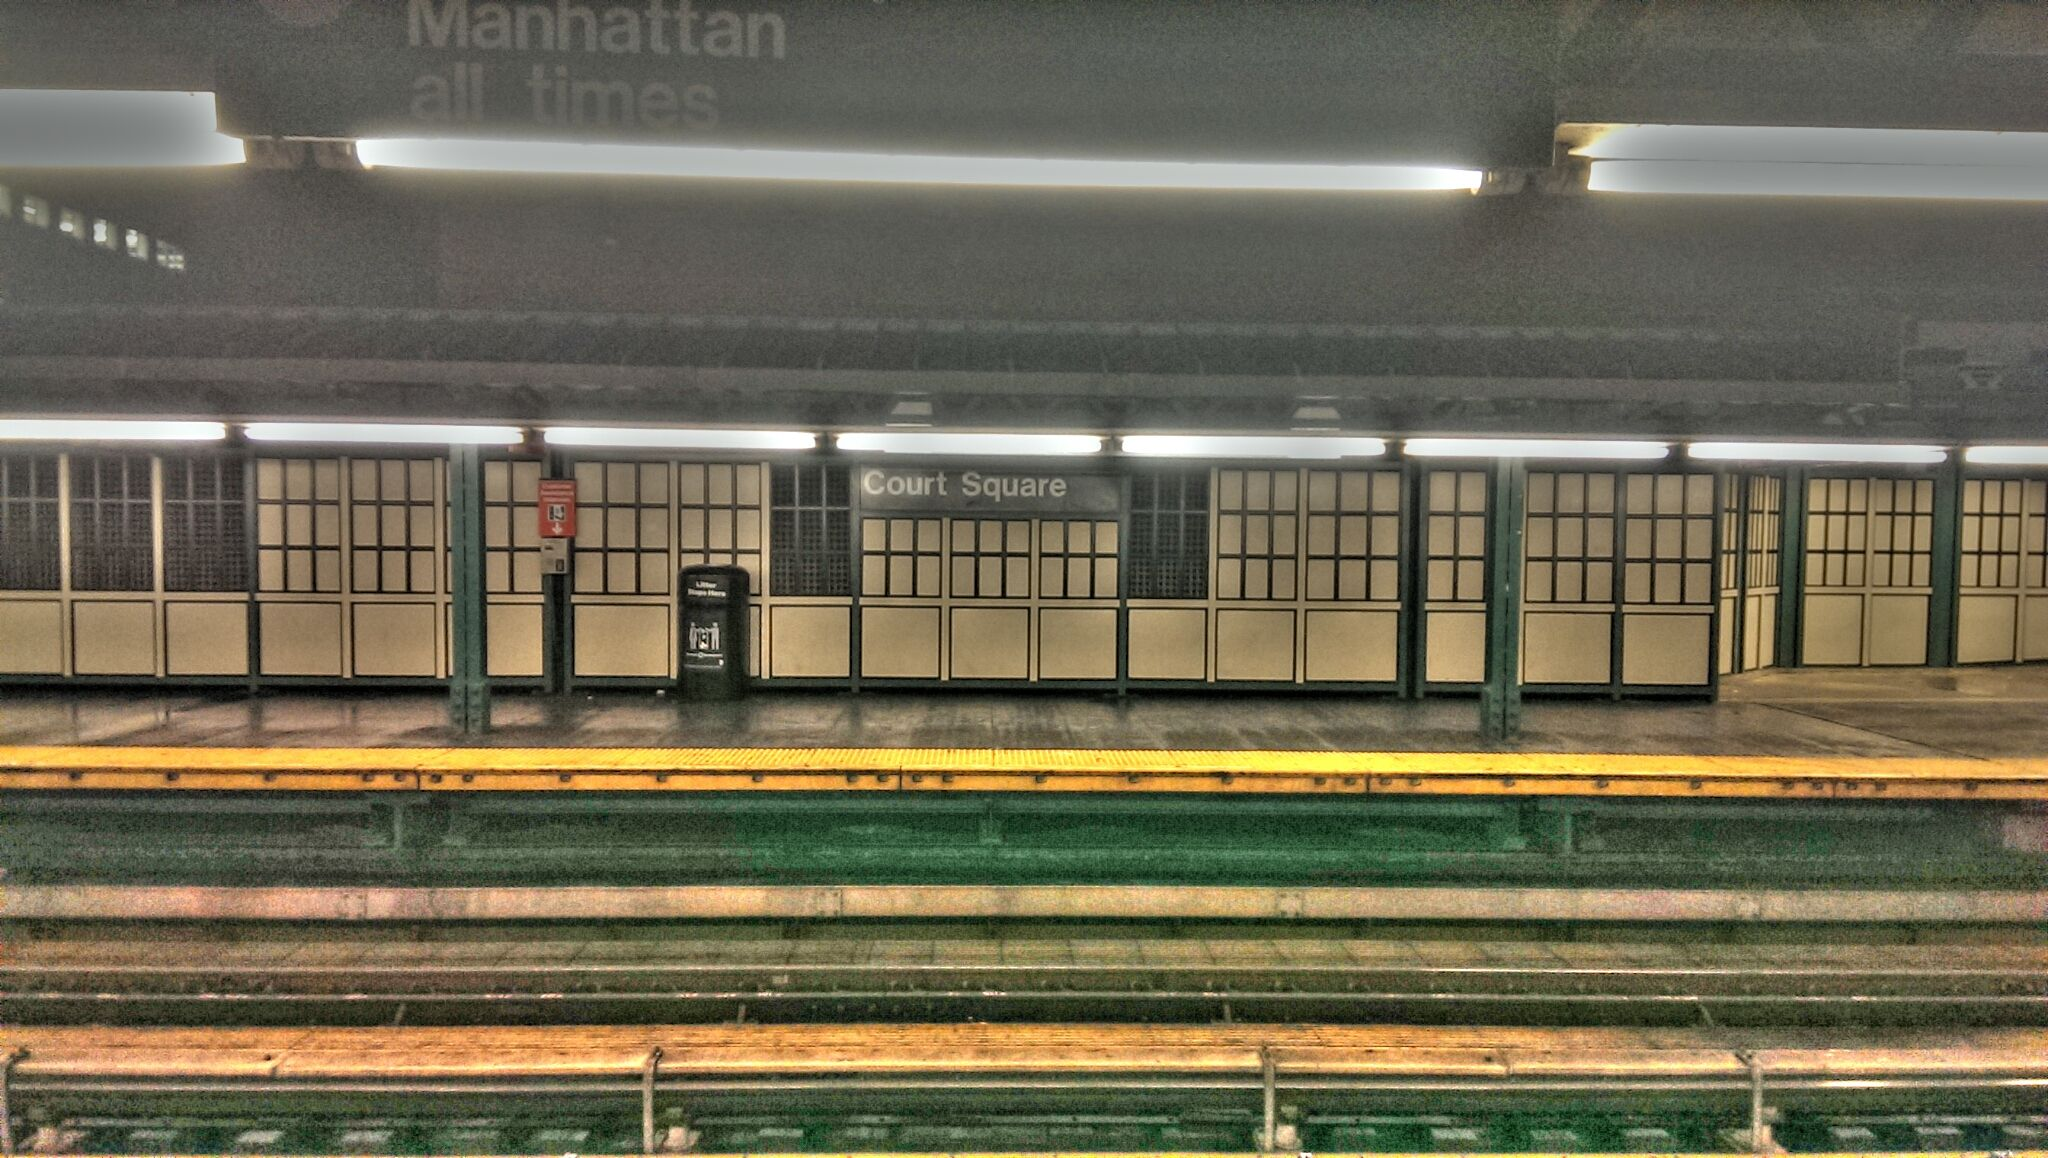 New York – Subway